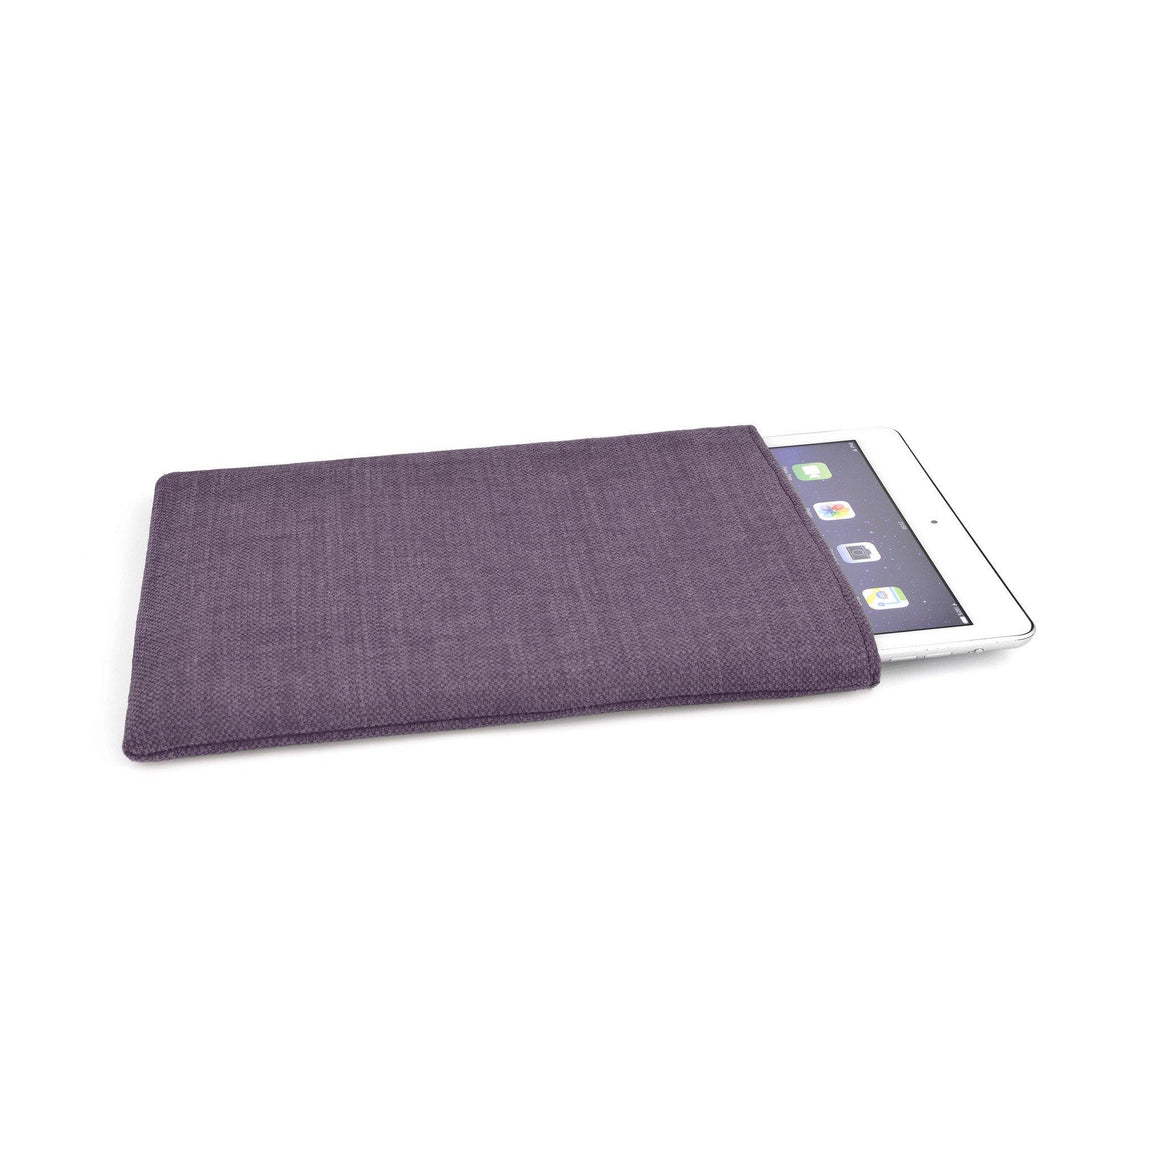 iPad Pro Linen Mulberry 10.5 - Wrappers UK